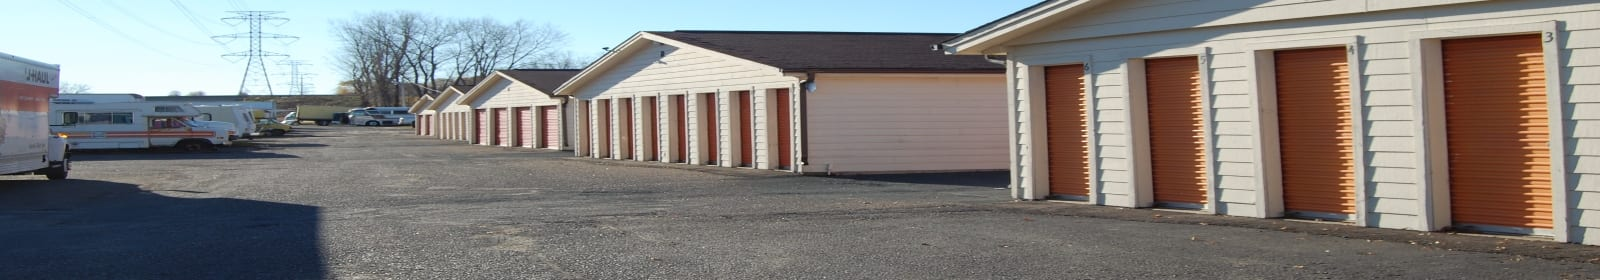 Find Coon Rapids Storage.